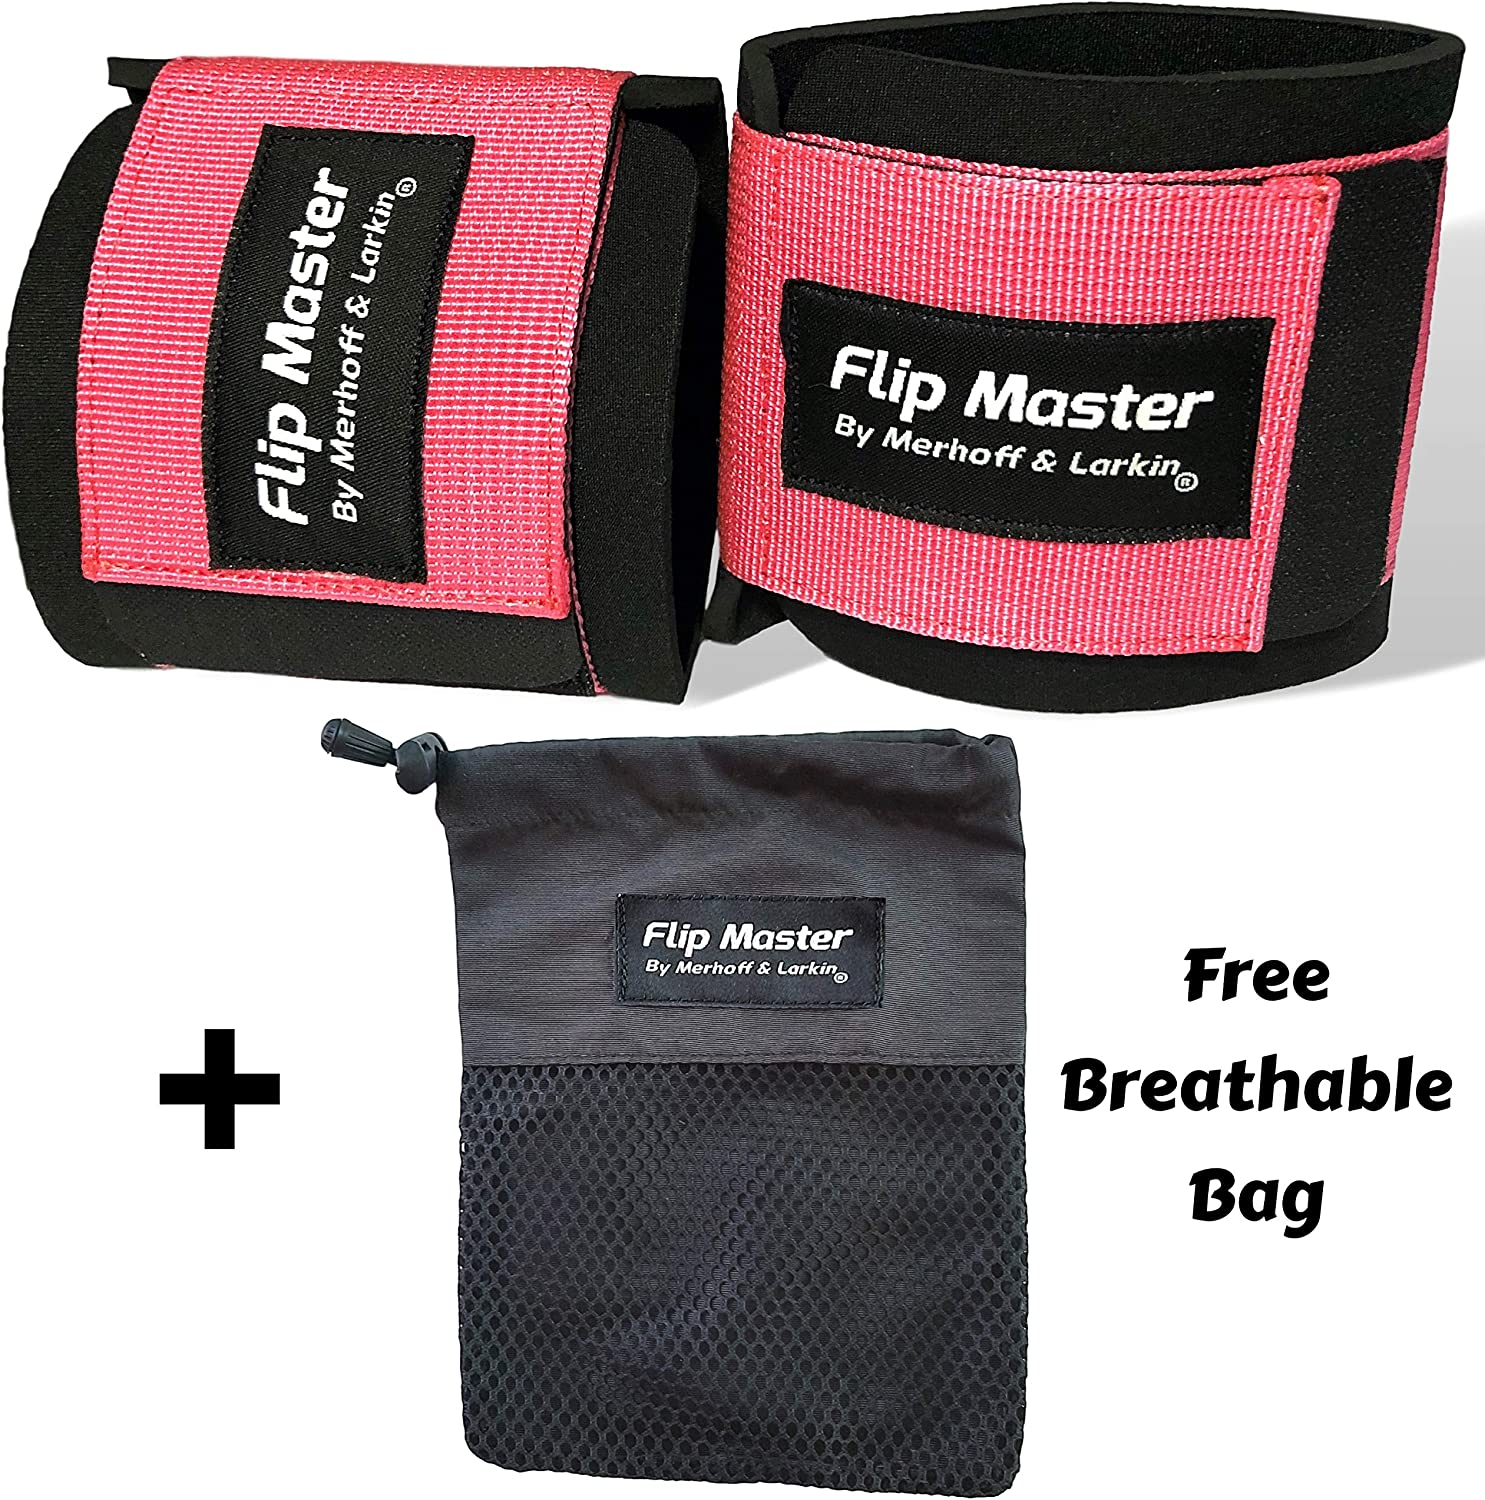 Dance Band Accessory to Improve Back Handspring /& Backflip Form One-Size-Fits-All Adjustable Straps Perfect for Cheerleading Gymnastics Tumbling Cheerleading Ankle Straps /& Gymnasts